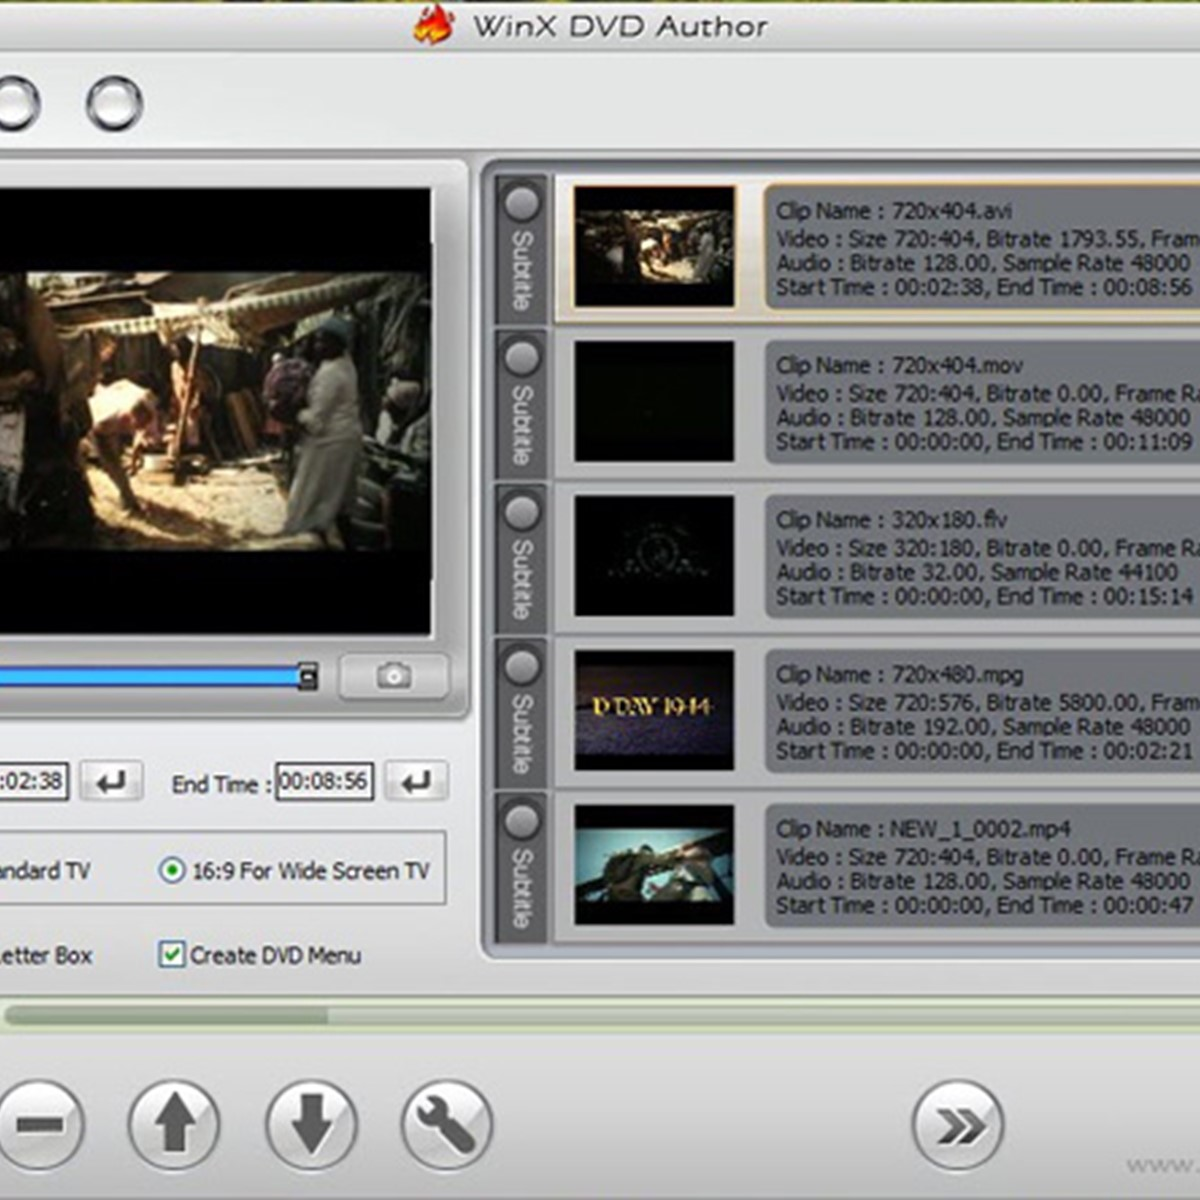 WinX DVD Author Alternatives and Similar Software